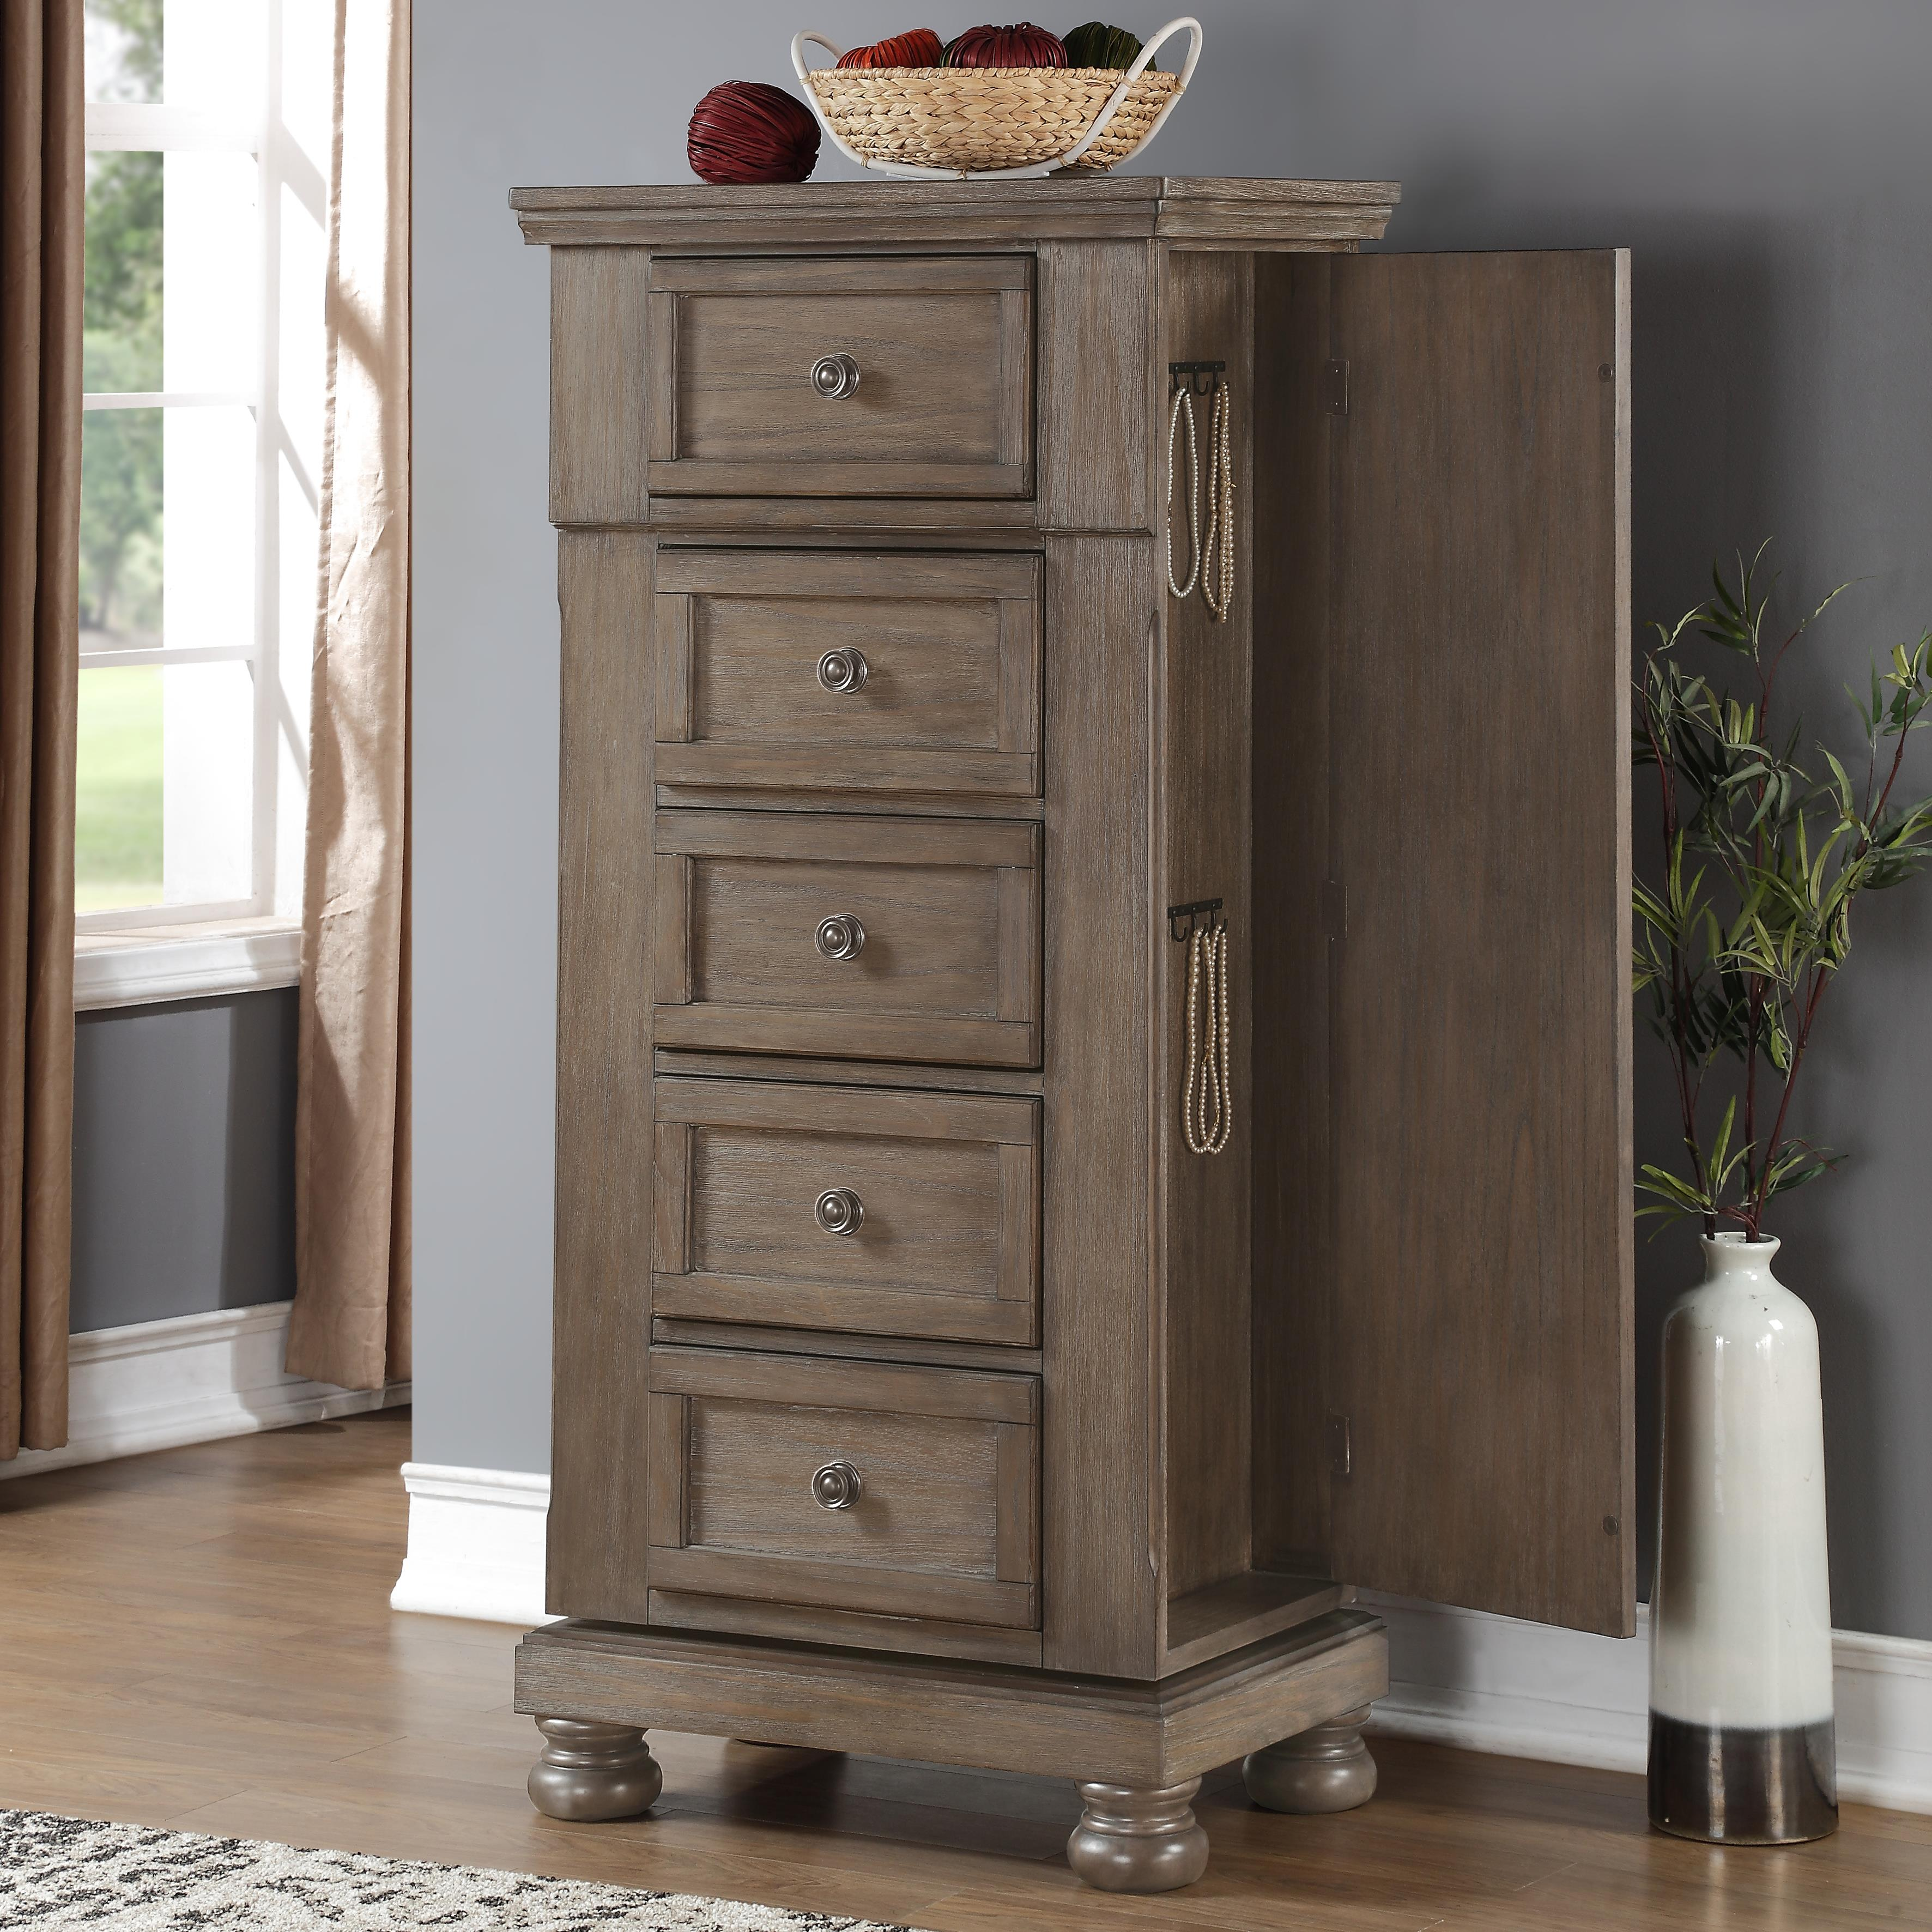 Allegra Swivel Chest by New Classic at Beds N Stuff